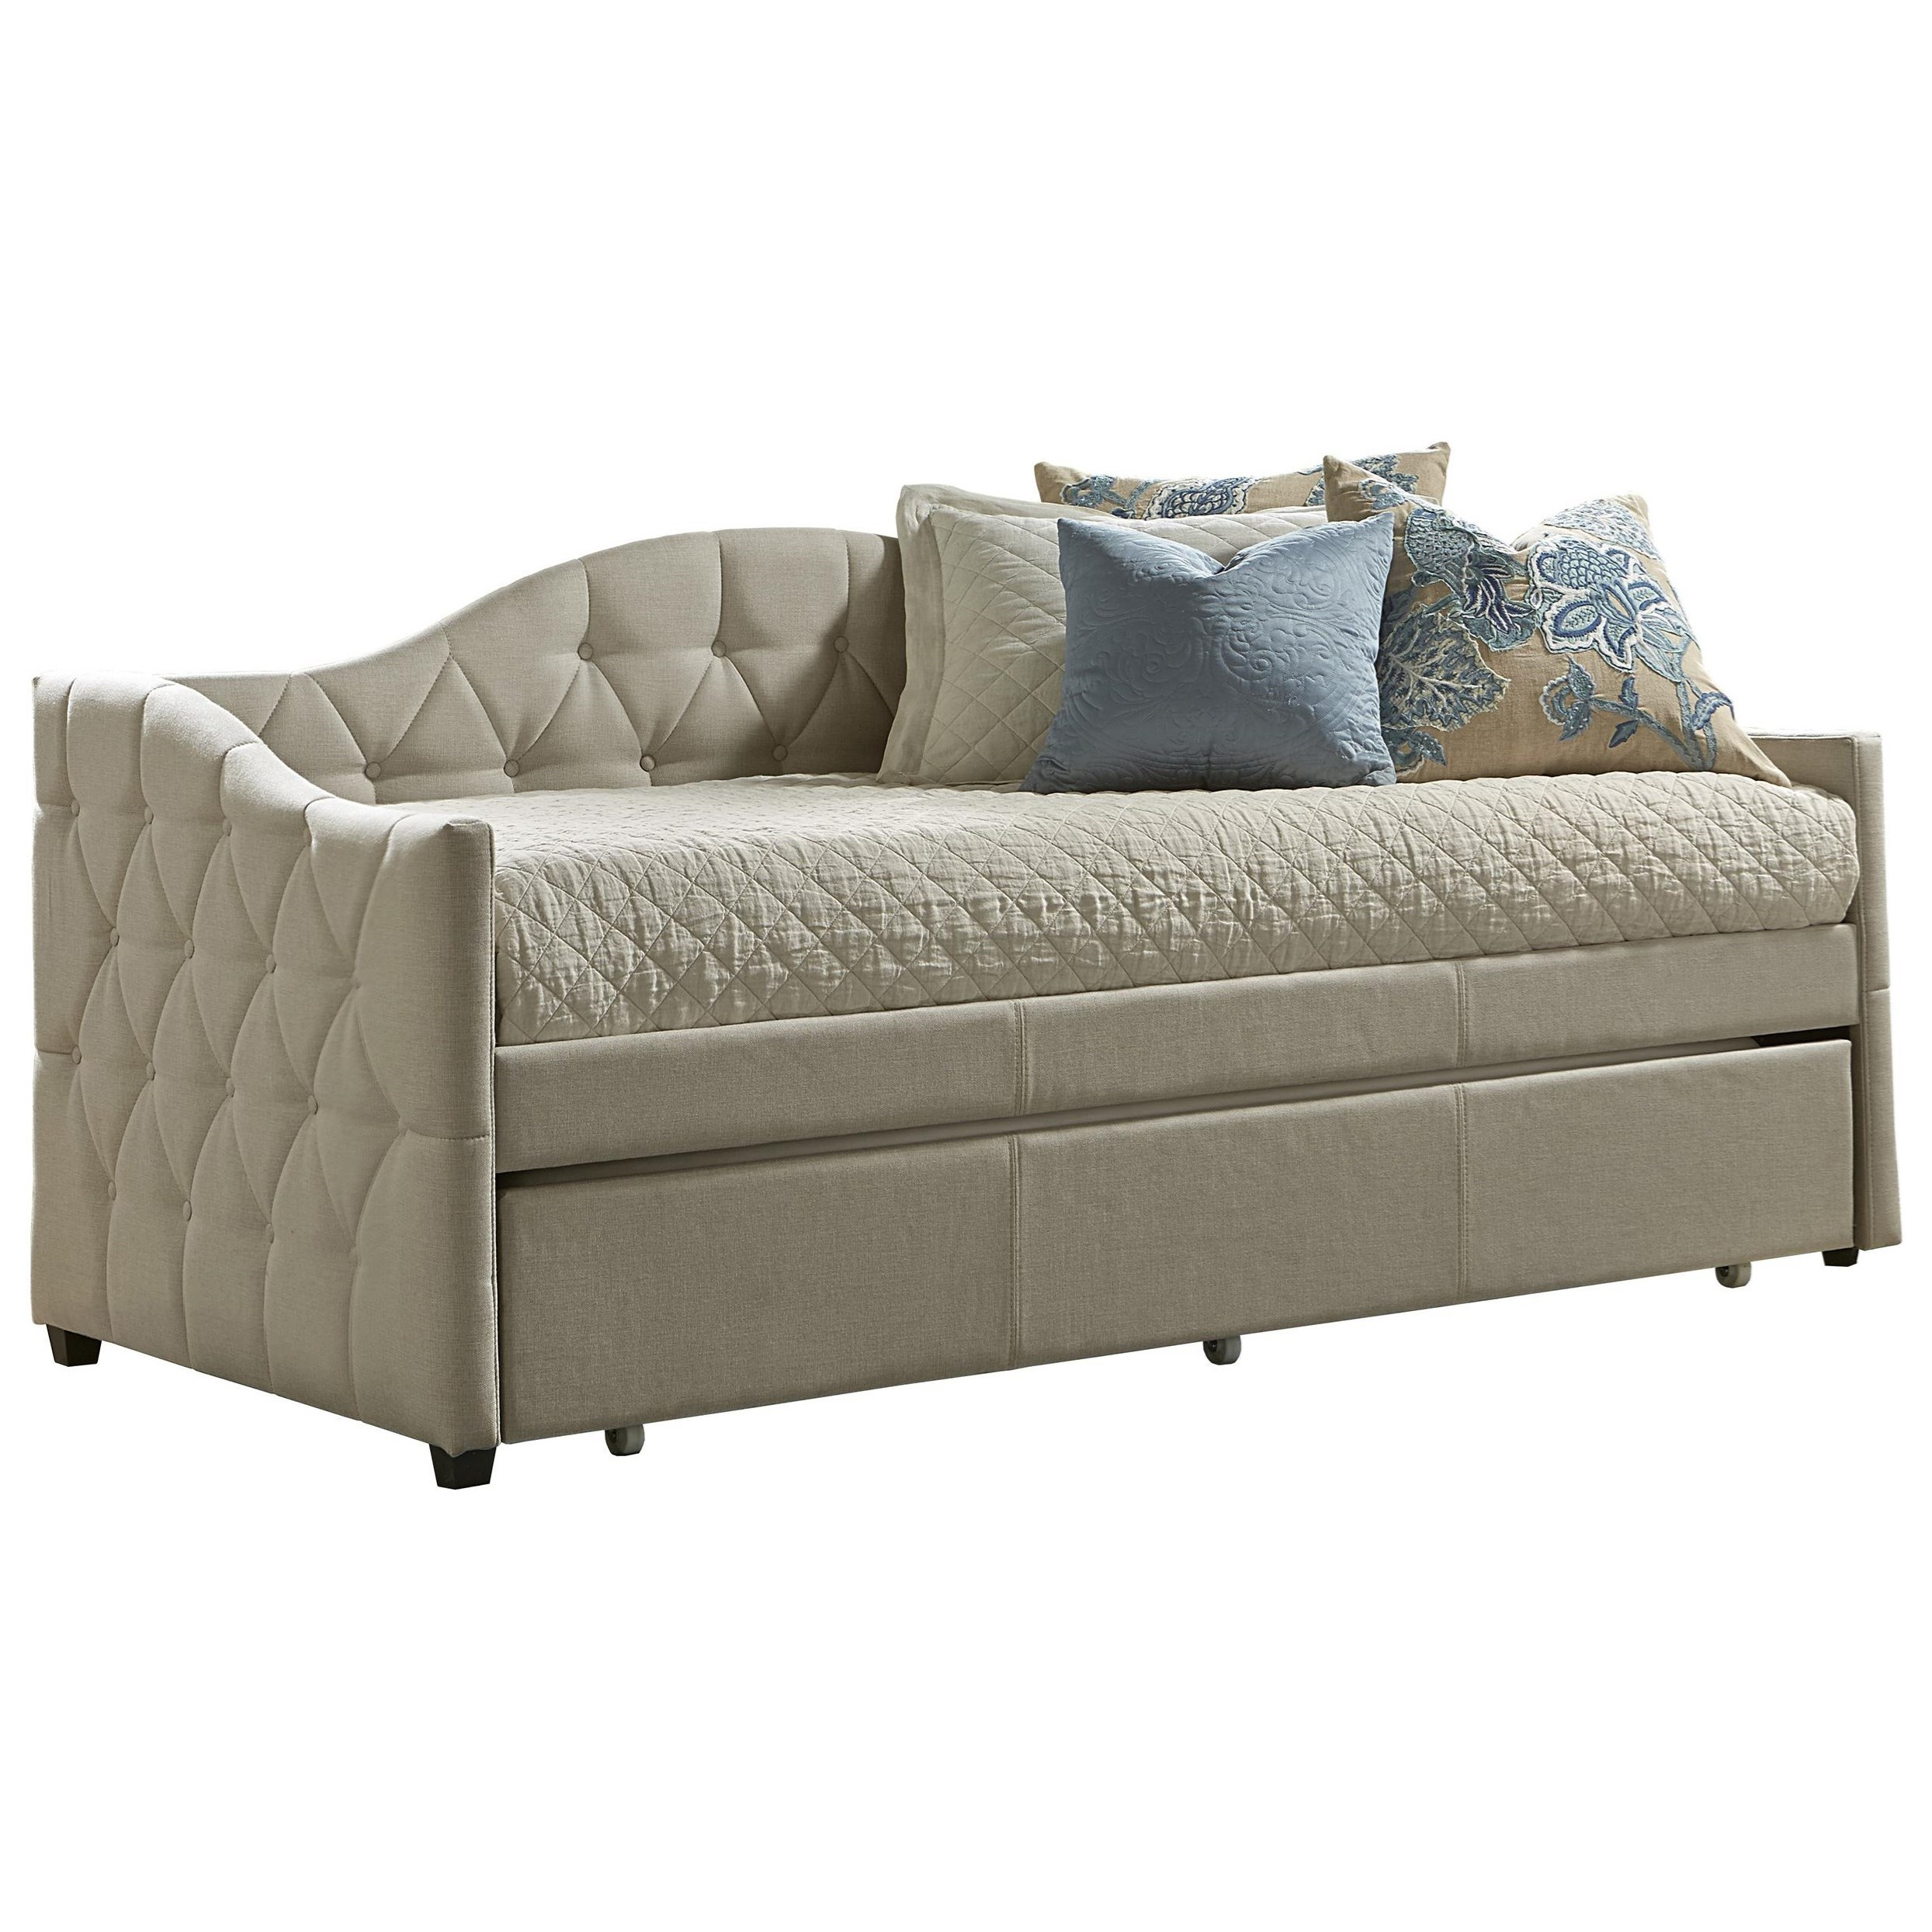 Daybeds Jaylyn Upholstered Daybed W Trundle Rotmans